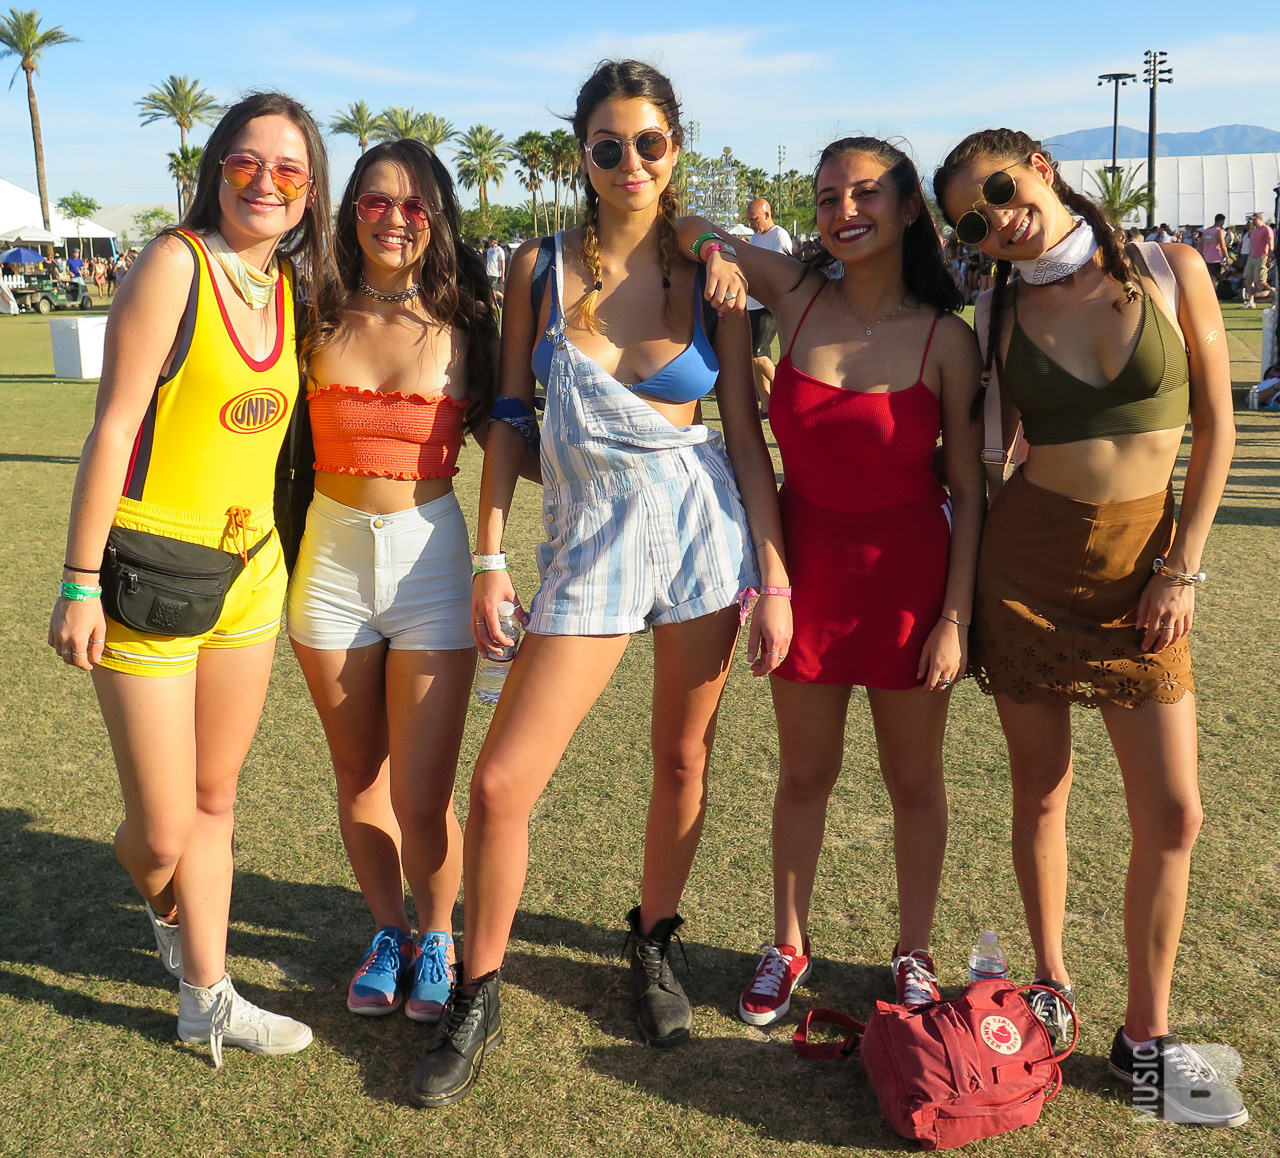 Coachella  - Empire Polo Club